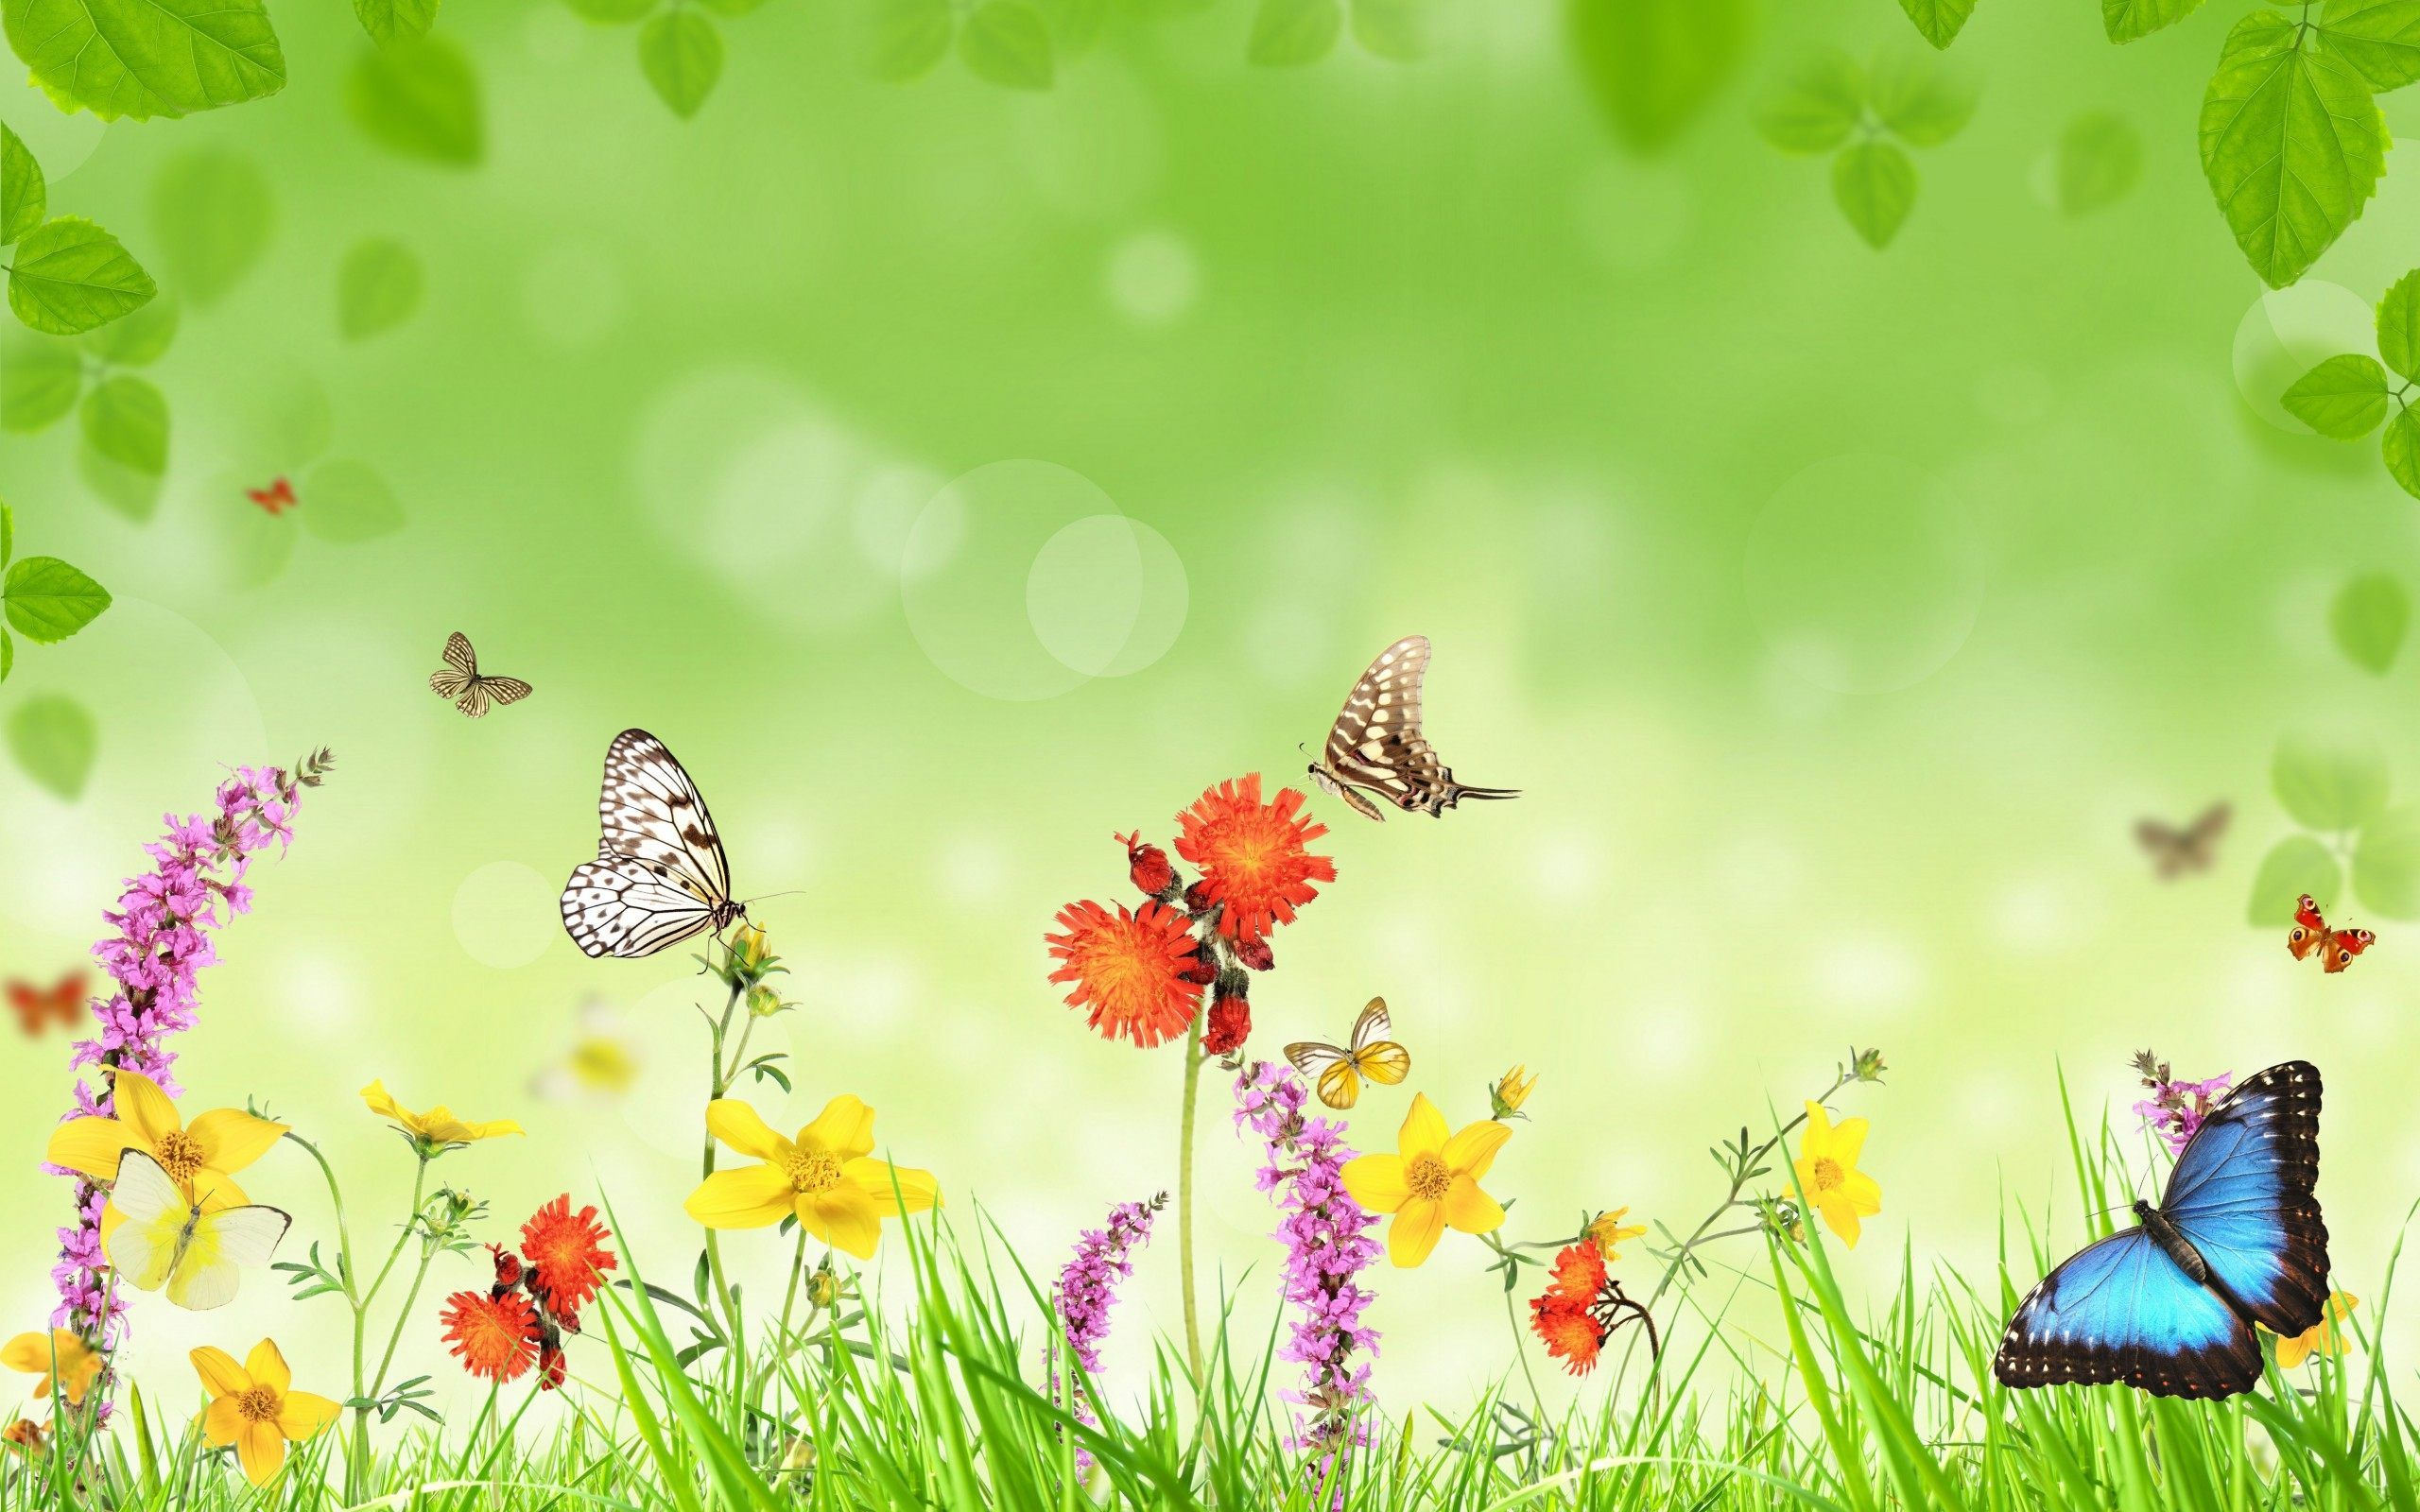 butterflies and flowers art wallpaper for desktop and mobile free download we have best collection